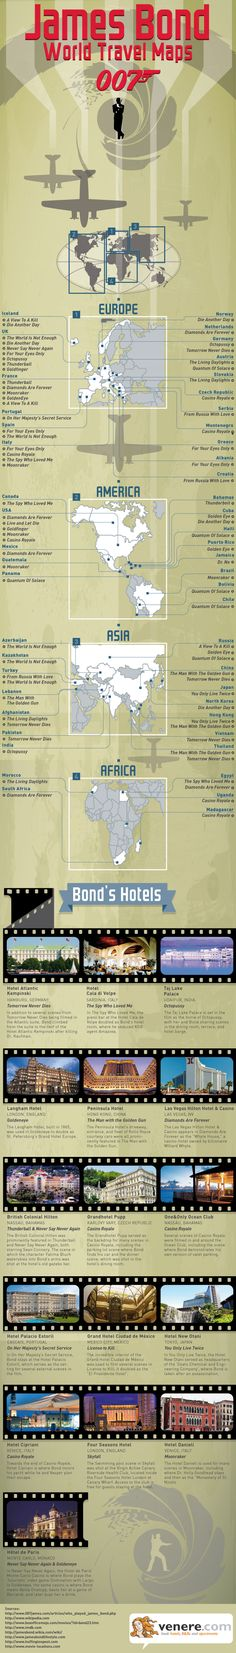 Which parts of the world did James Bond visit in his adventures? In which hotels did he stay? Find it out here!